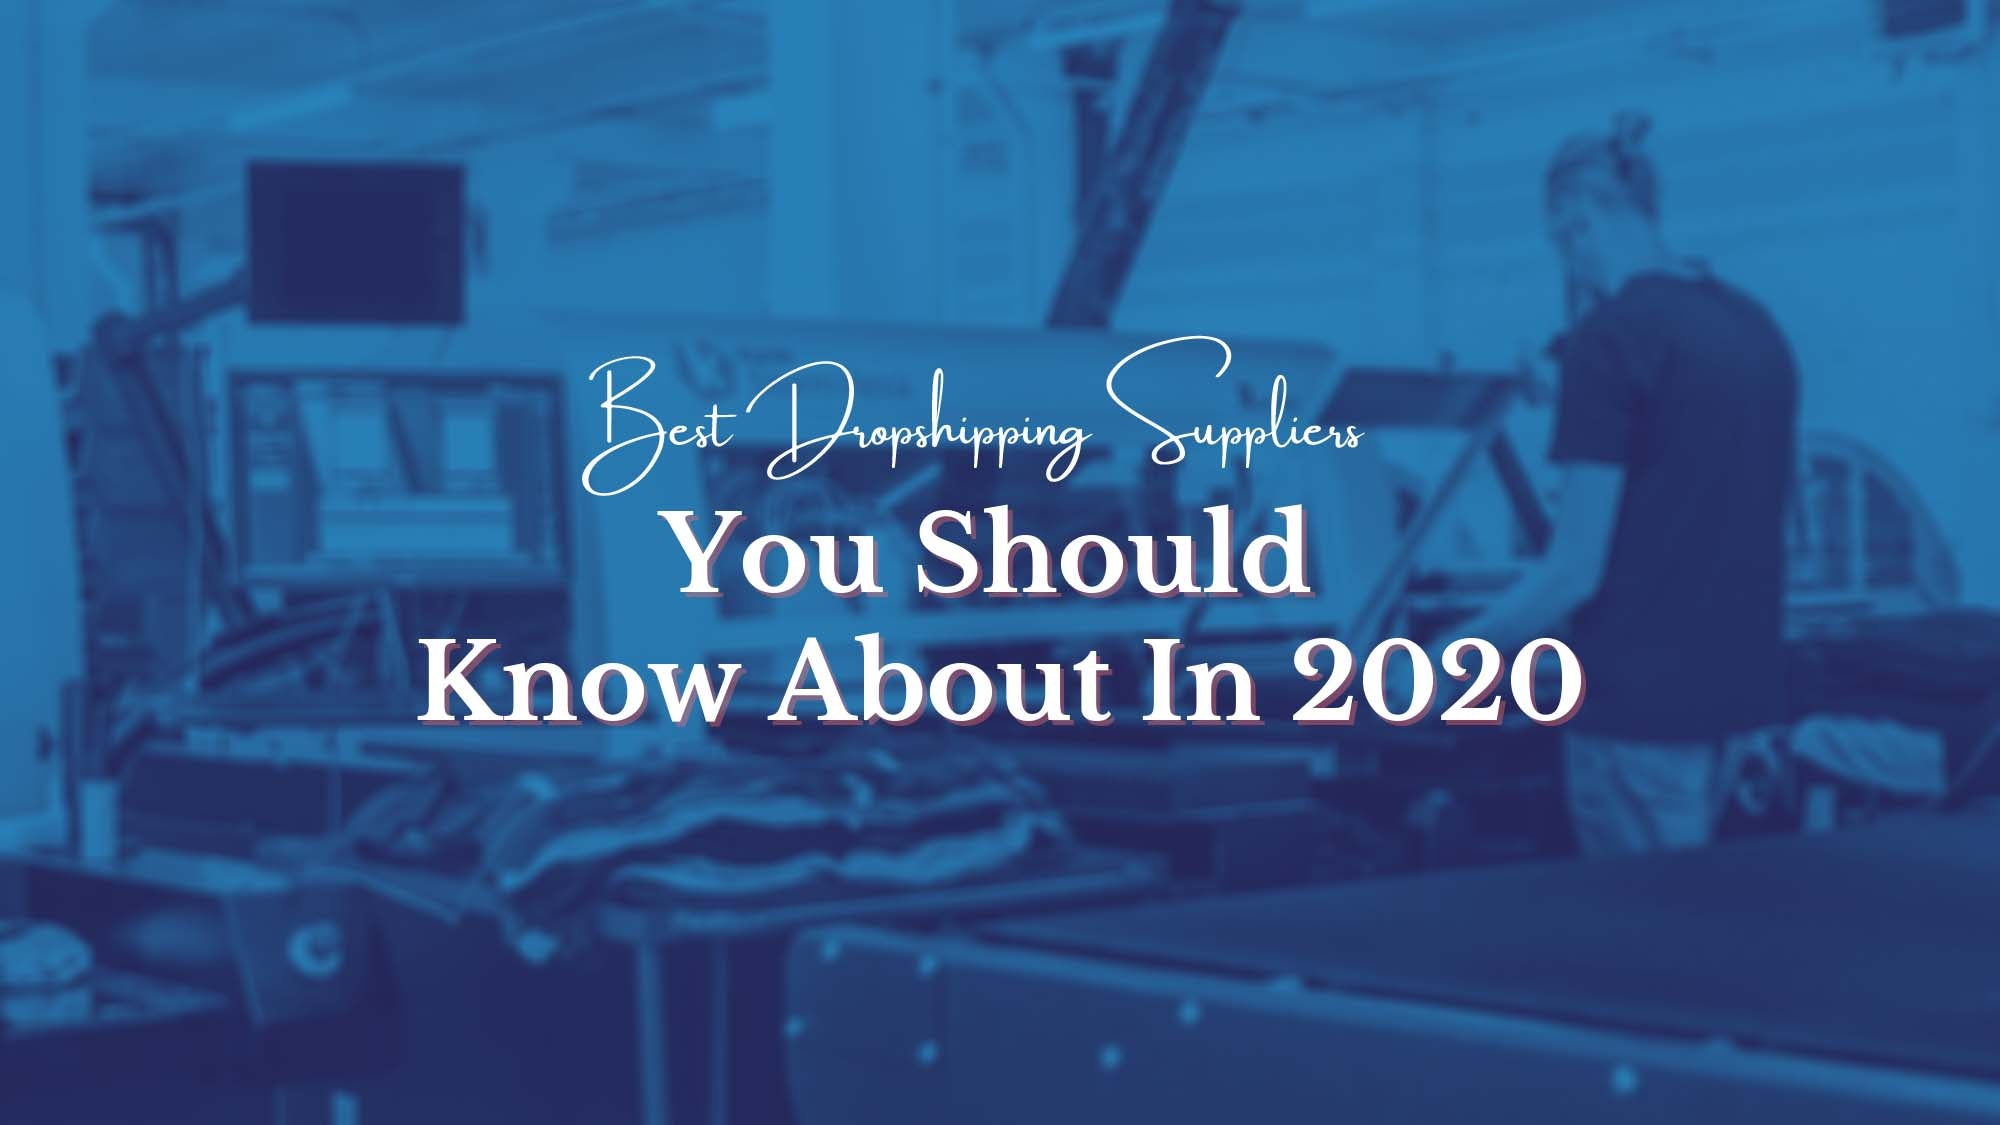 Best Dropshipping Suppliers You Should Know About In 2020